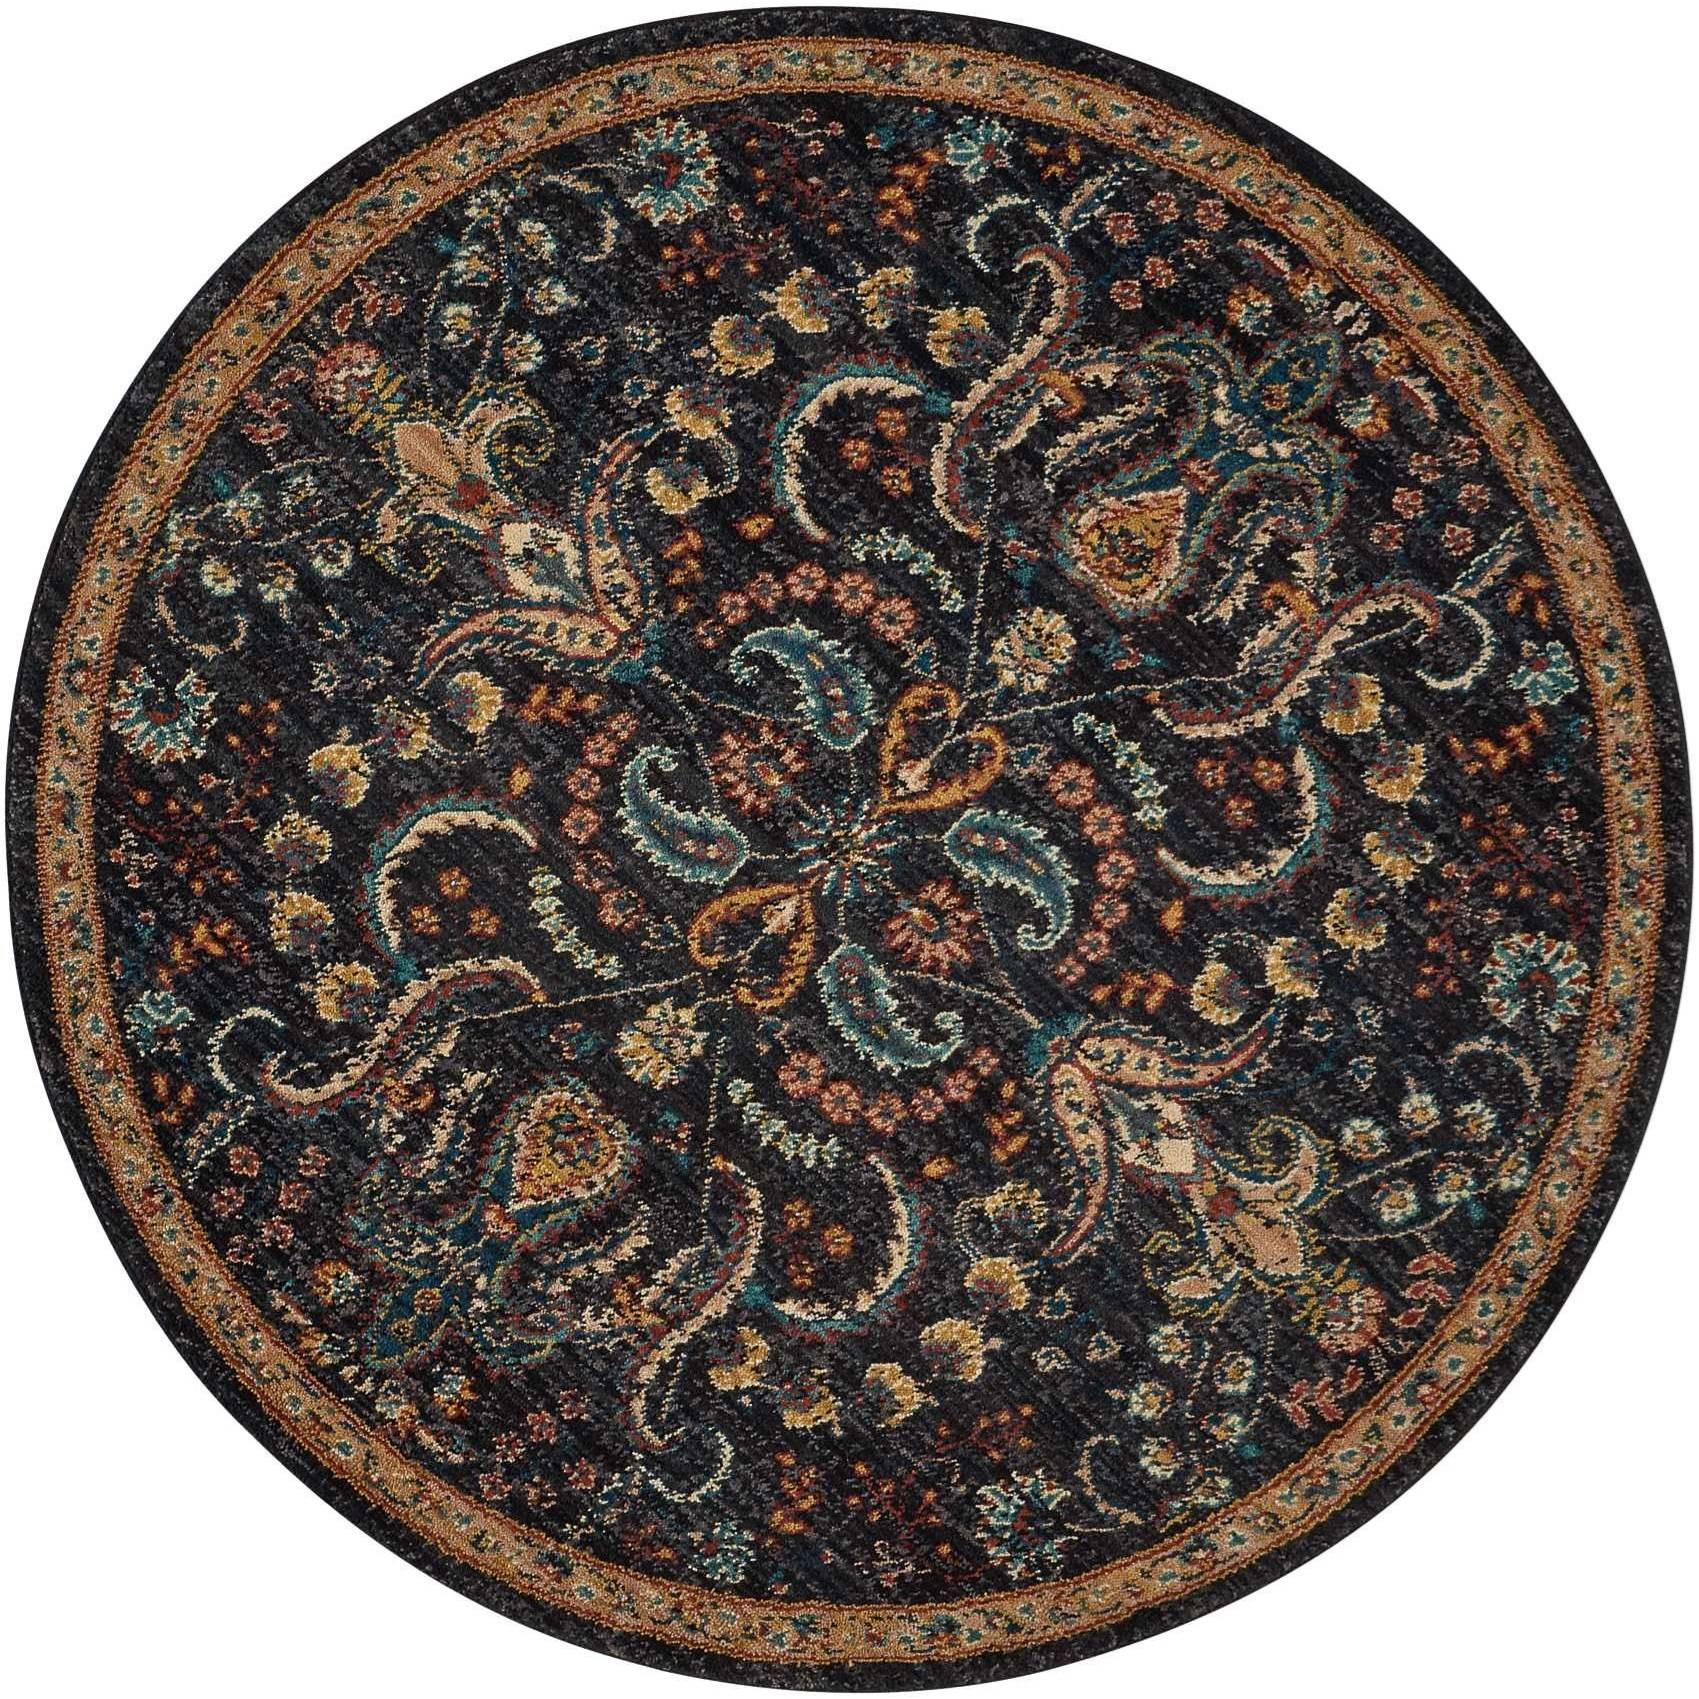 Nourison 2020 5' X 5' Night Fall Rug by Nourison at Sprintz Furniture